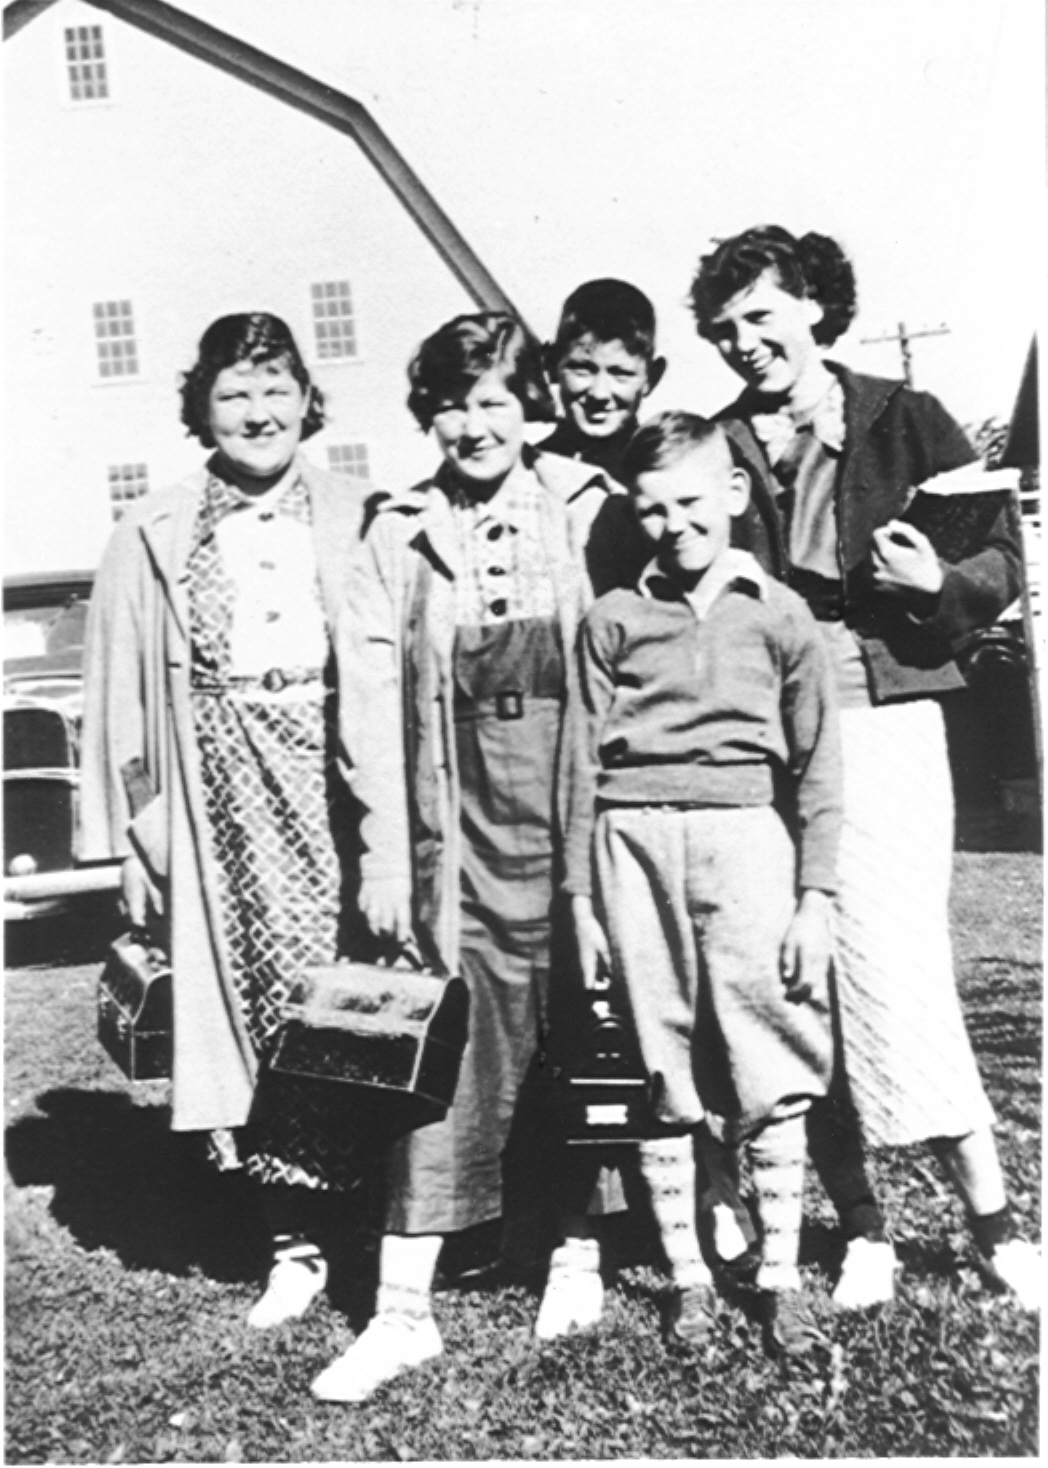 Leverette and Myrtle's kids: Ginny, Connie, Ranny, June, and Bill.